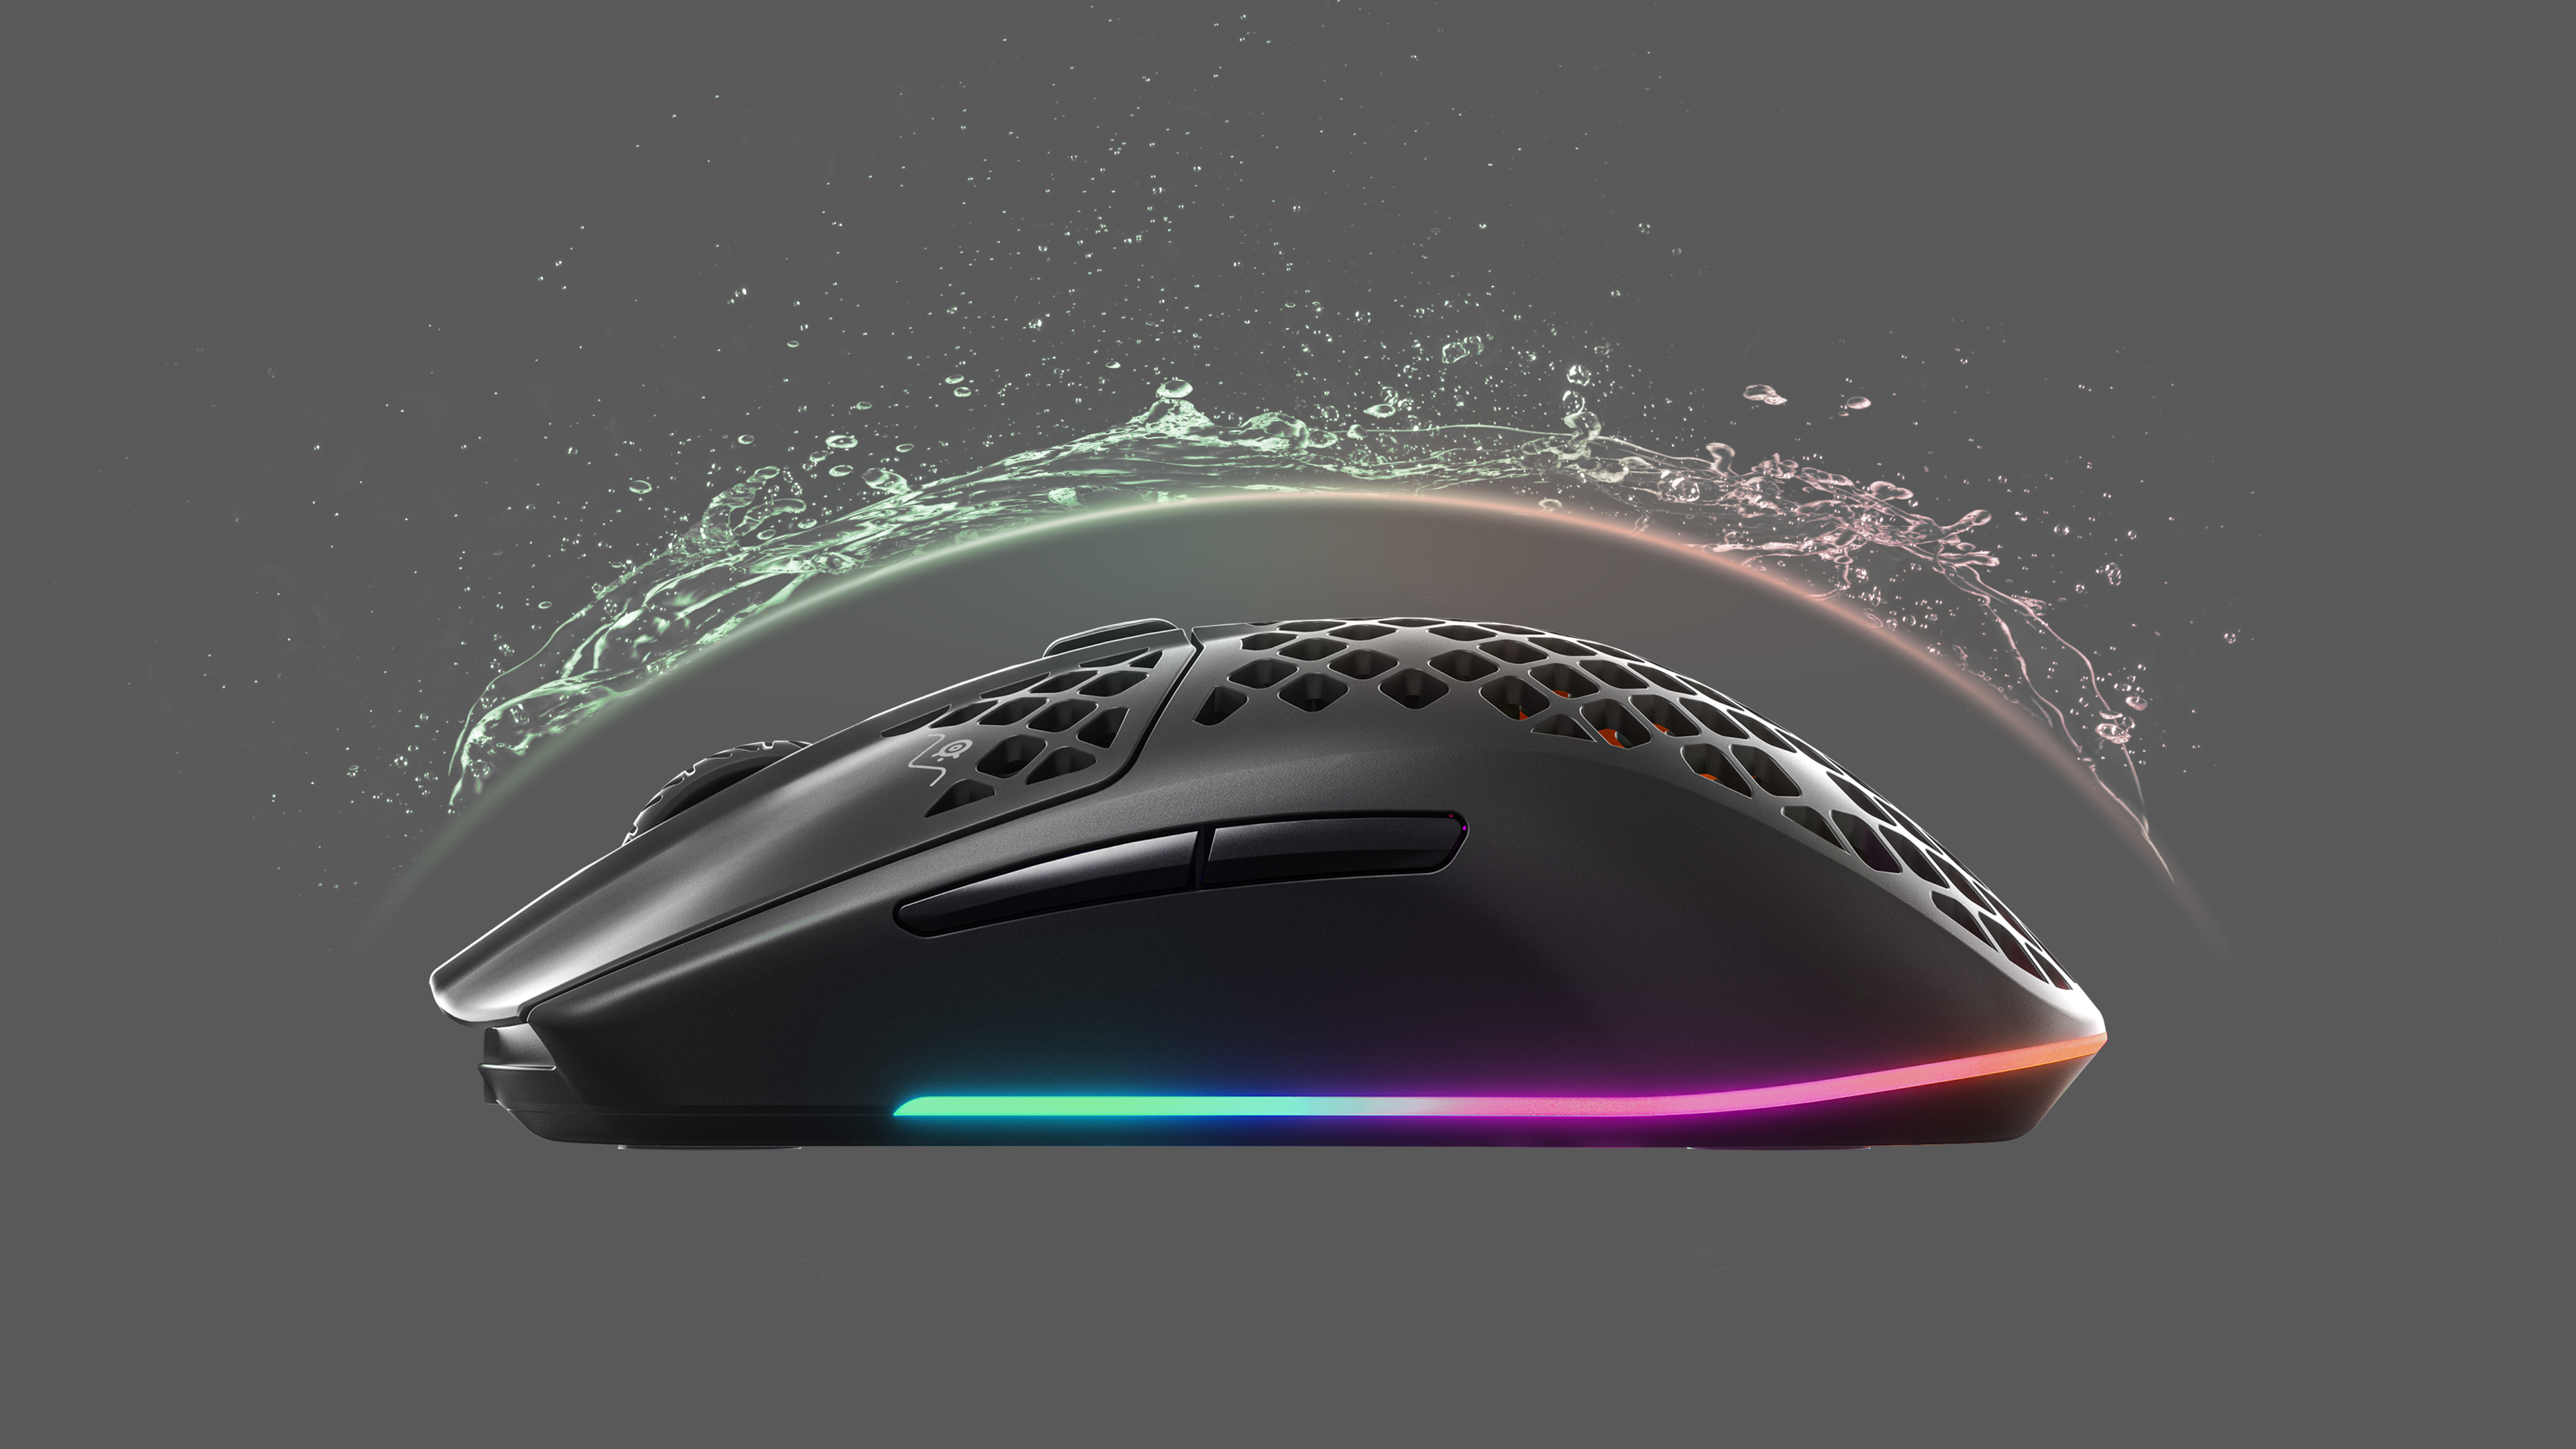 Aerox mouse being splashed with water